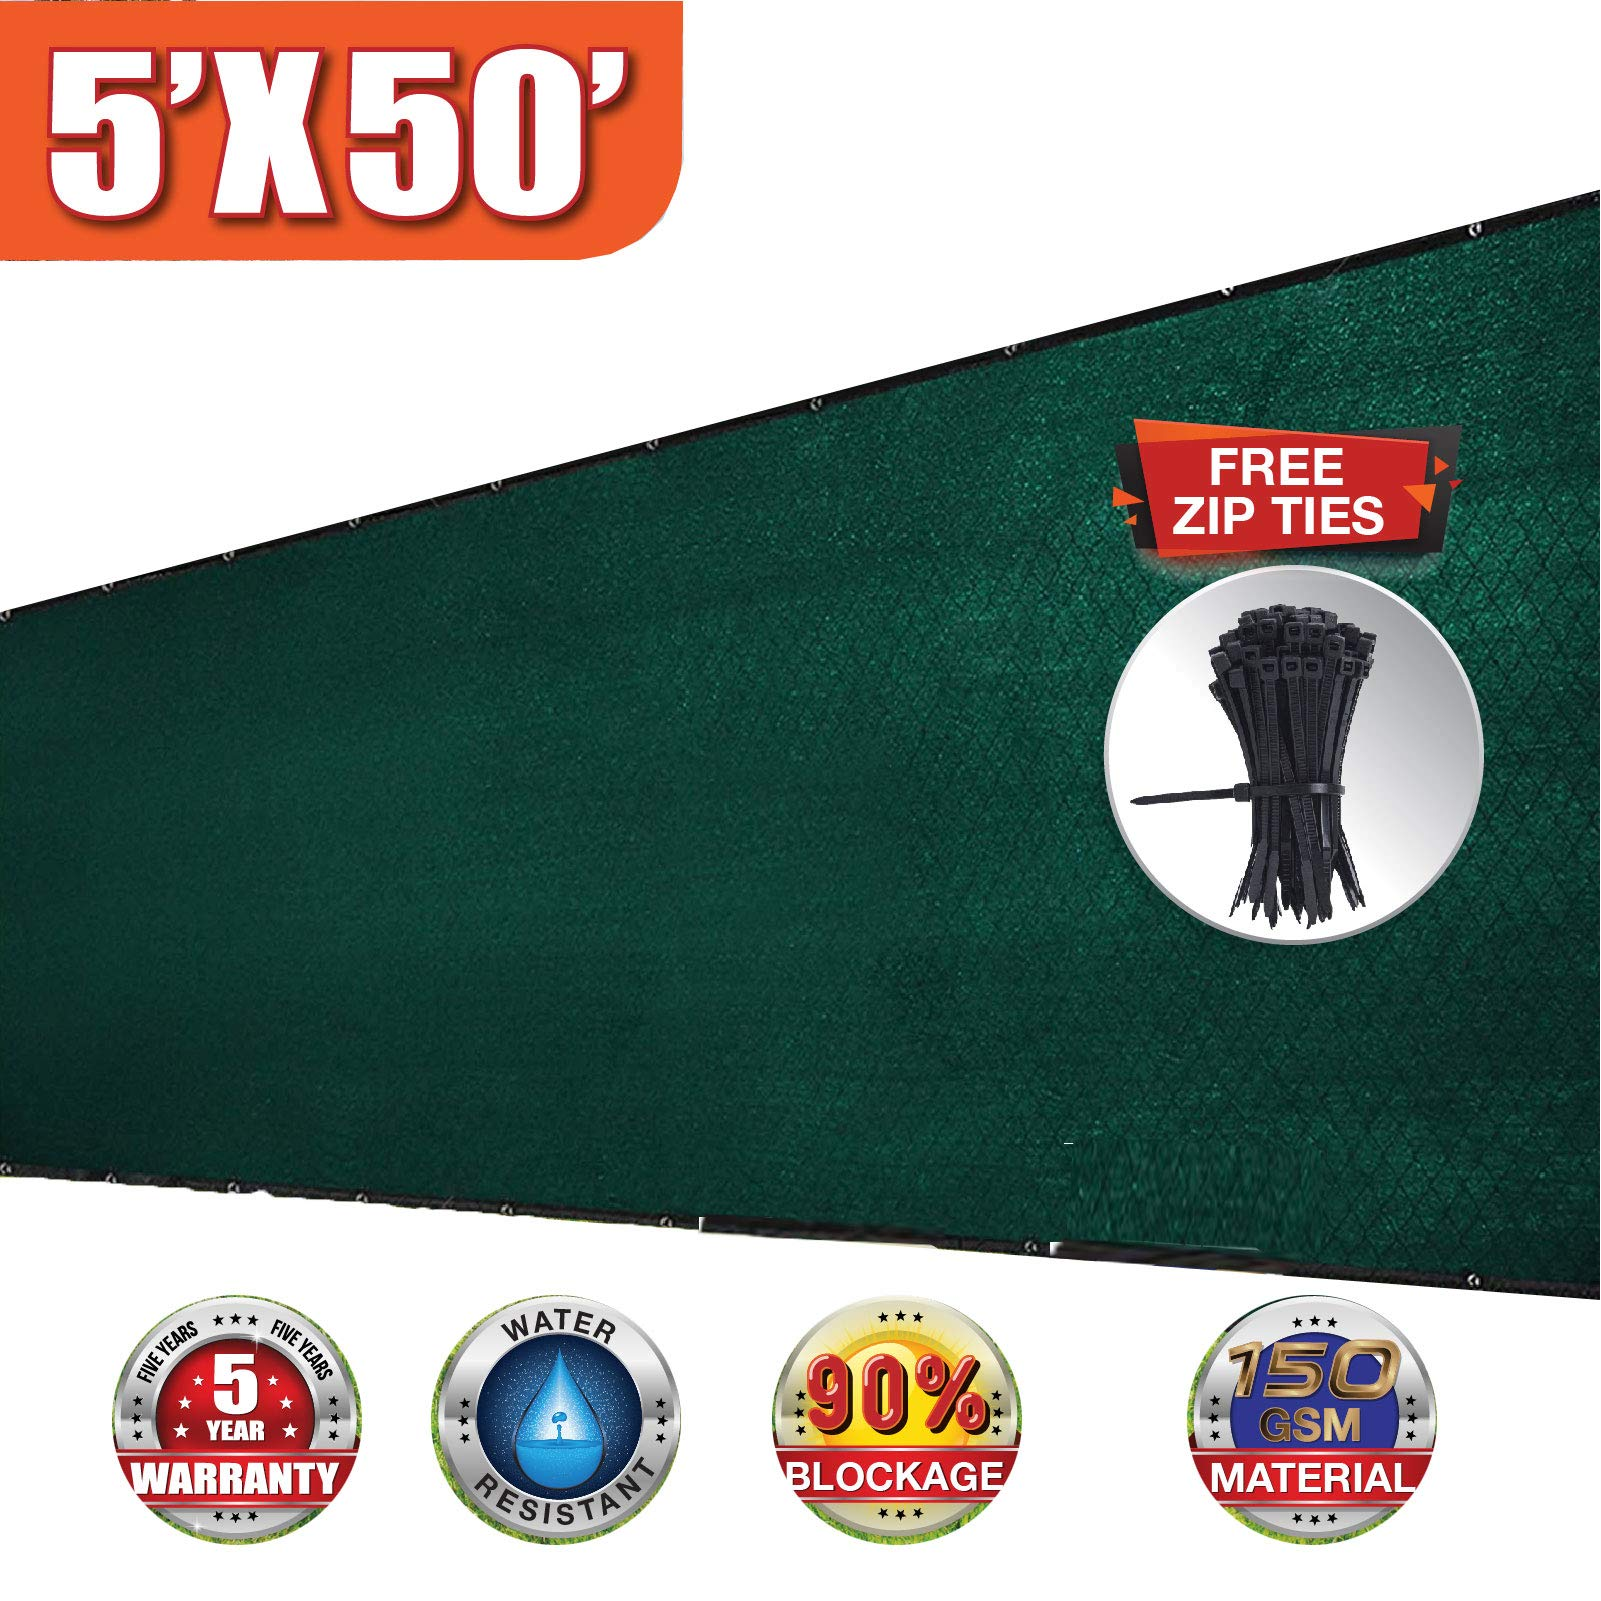 EVERGROW 5' x 50' Dark Green Privacy Fence Screen with Brass Grommets Heavy Duty 150 GSM Pefect for Outdoor Back Yard and Deck, Free Zip Ties, 90% UV Blockage 5 feet x 50 feet Green by EVERGROW